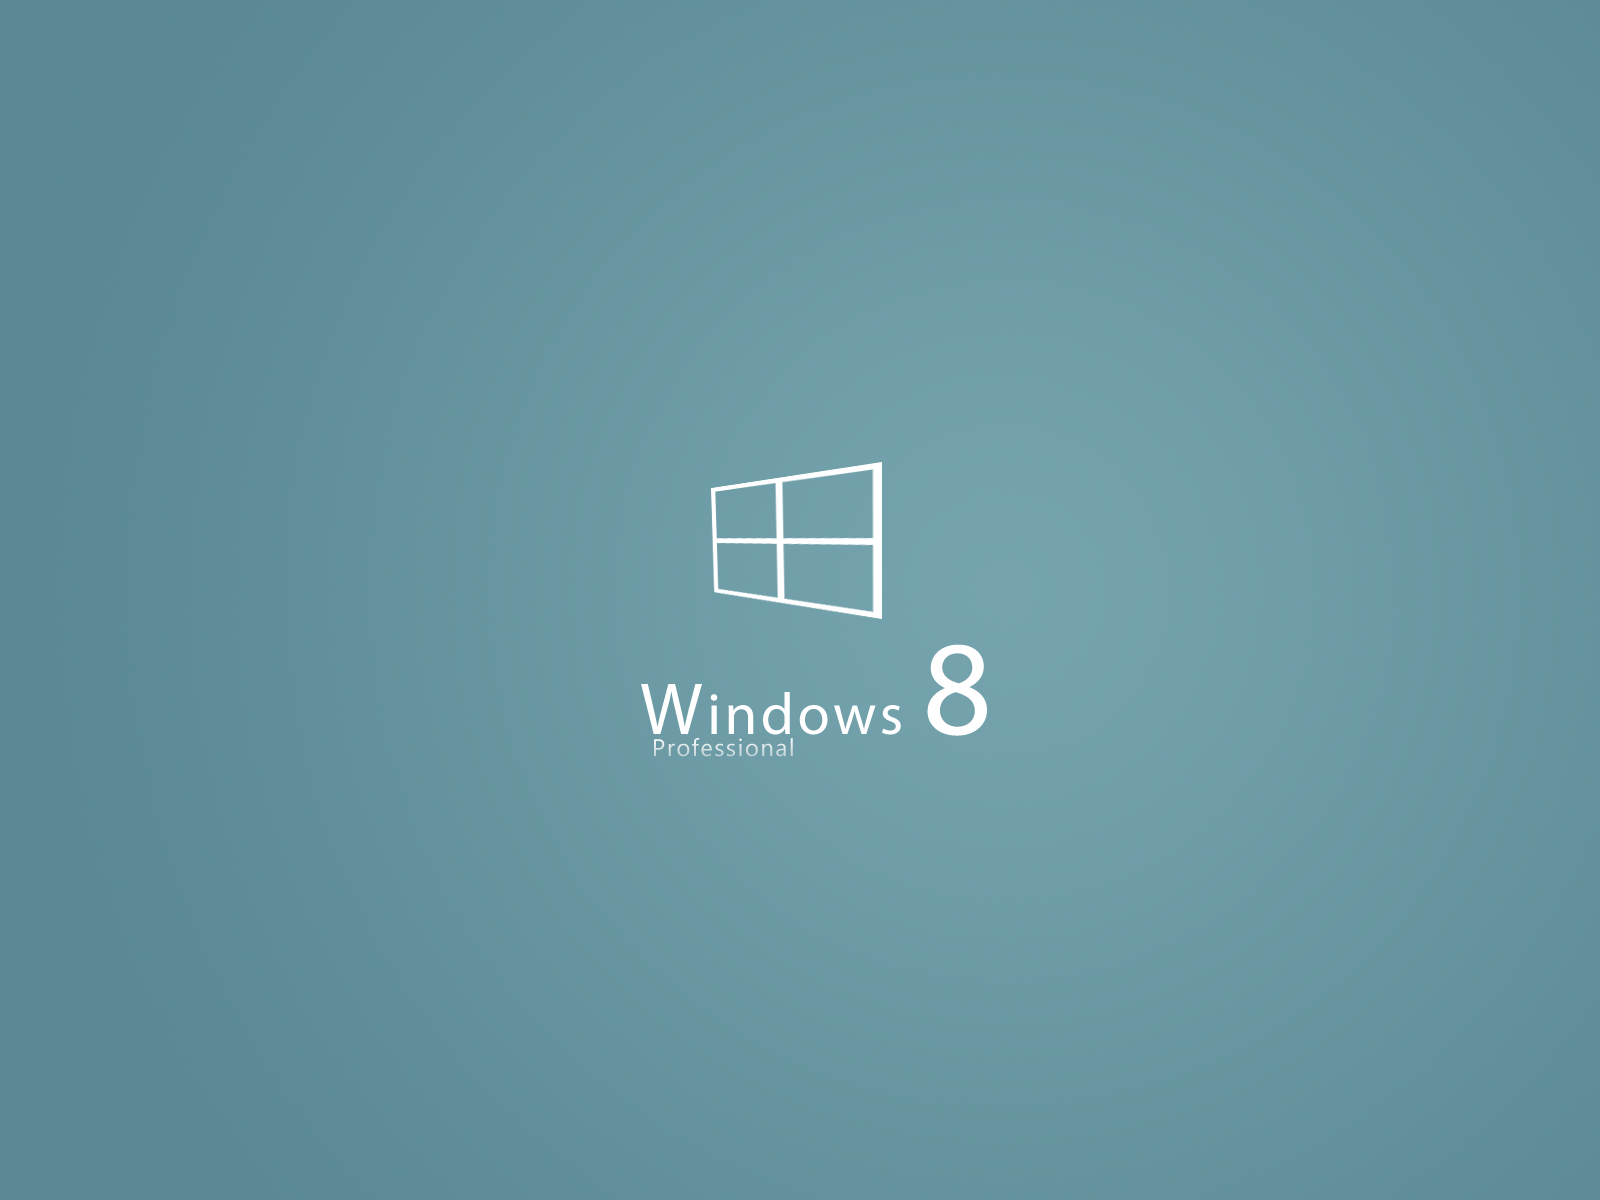 Windows 8 Concept New Logo Wallpaper 2 By Danielskrzypon